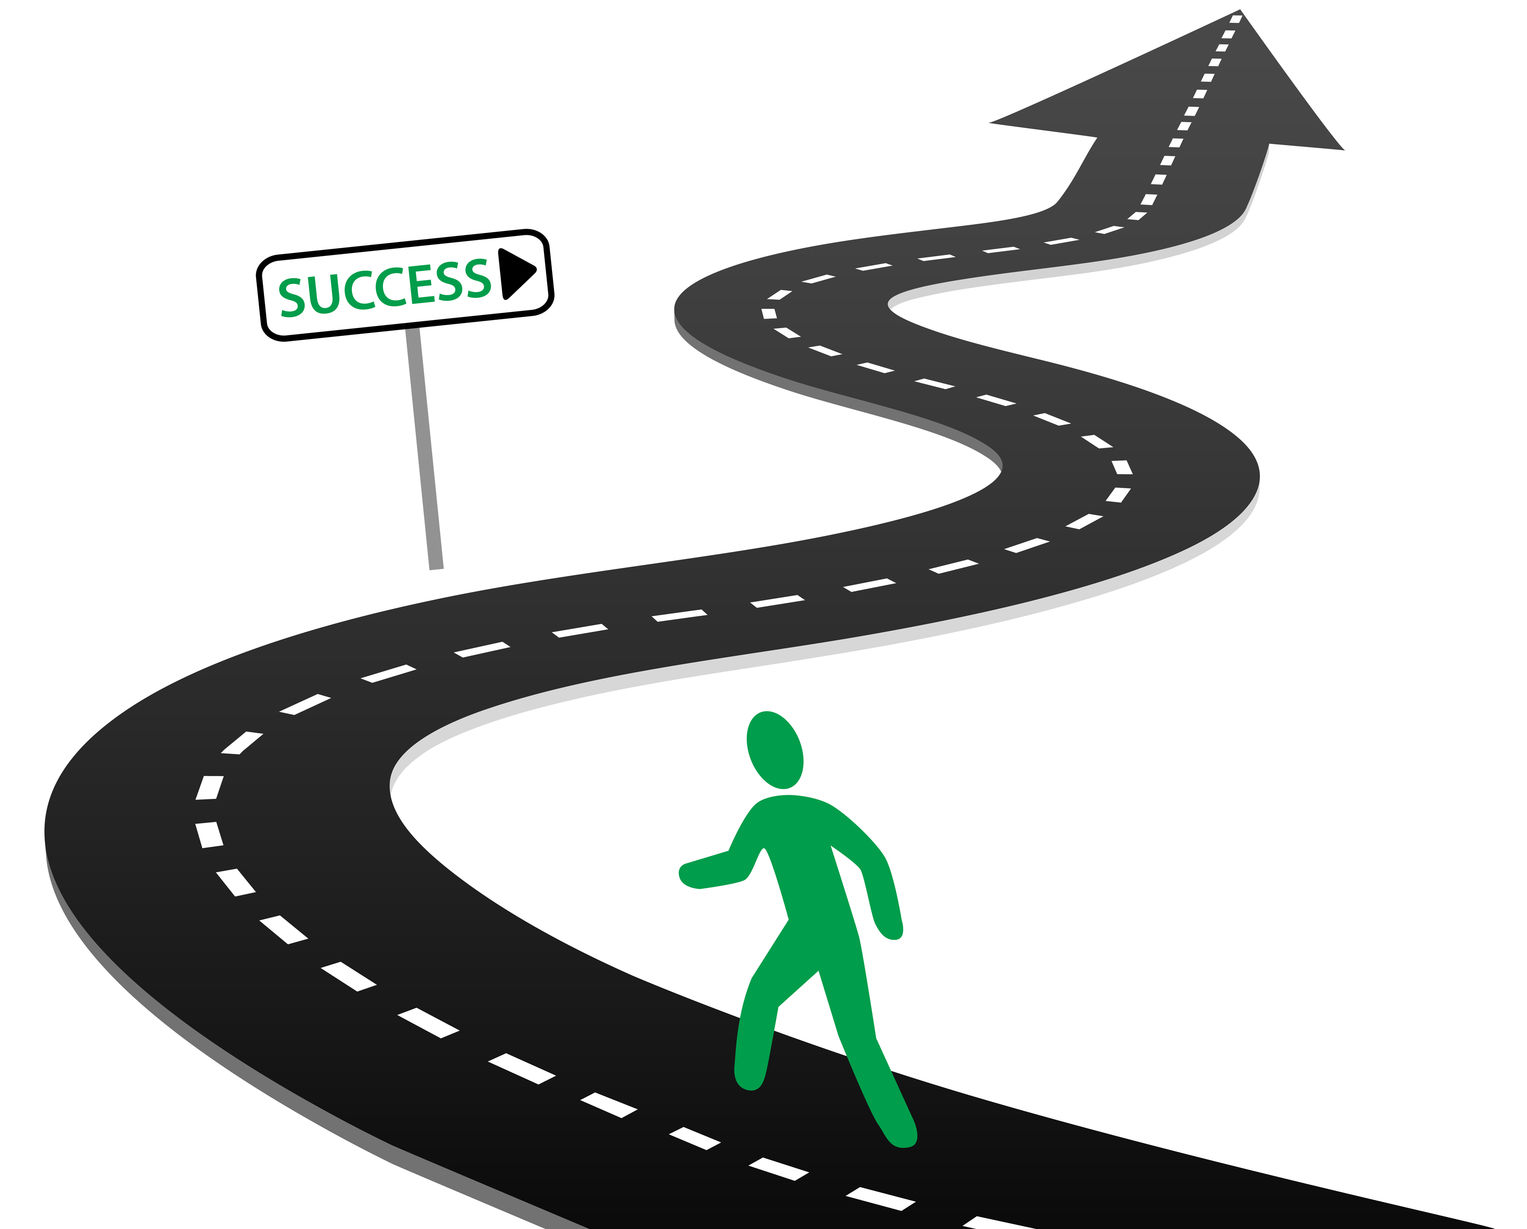 Pathway clipart long road Be Now? Further Success Built